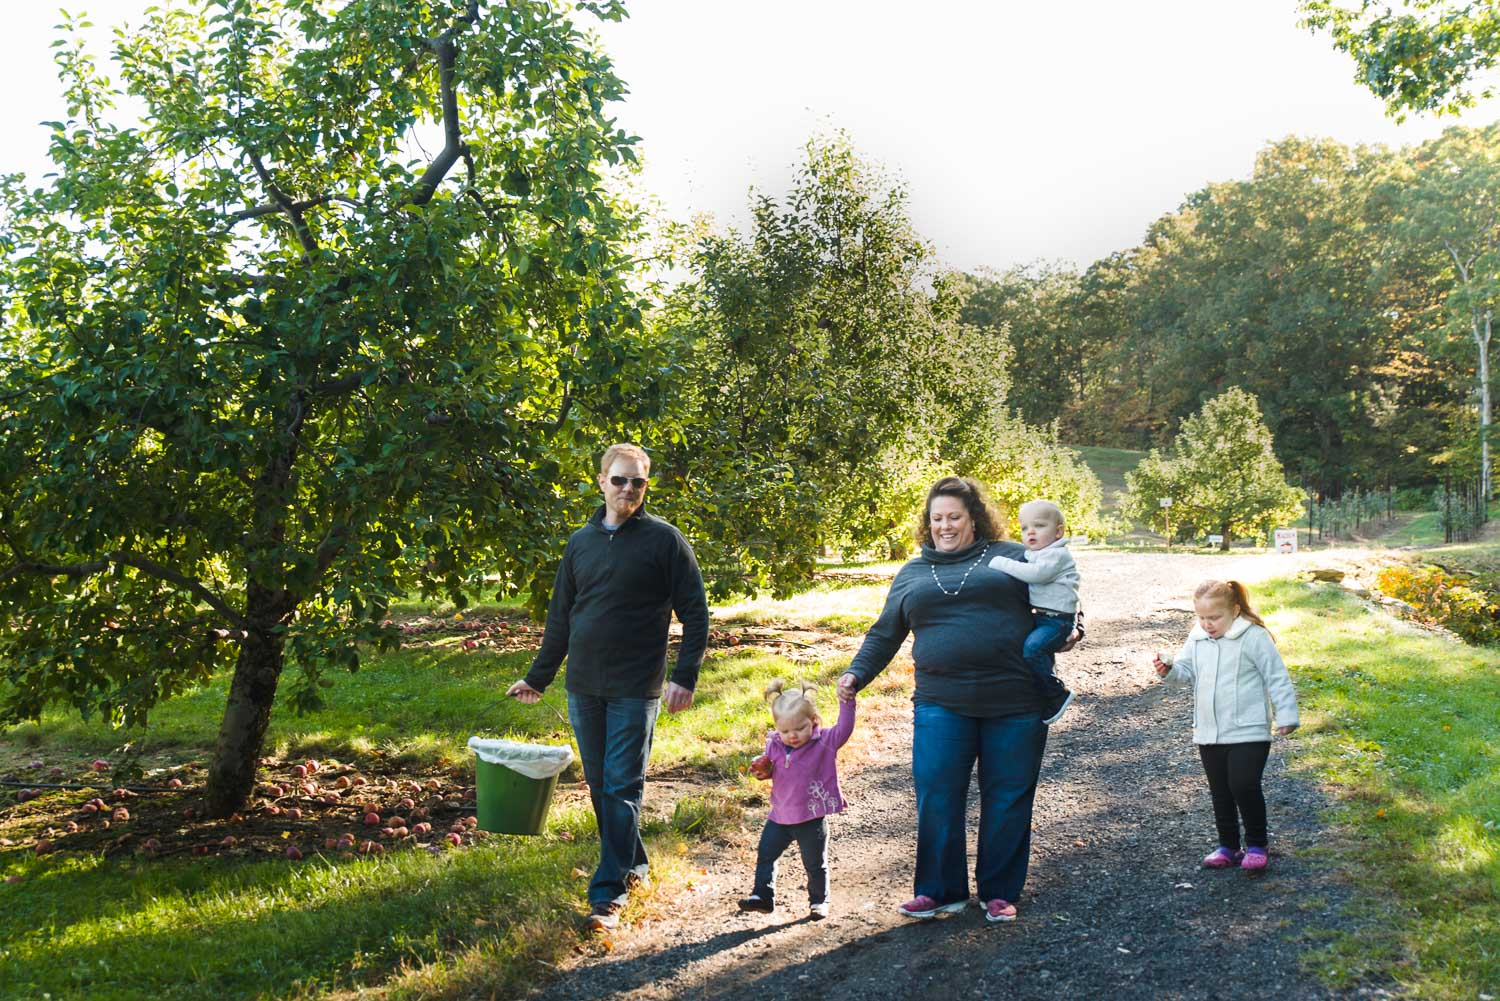 Family walking through an apple orchard.